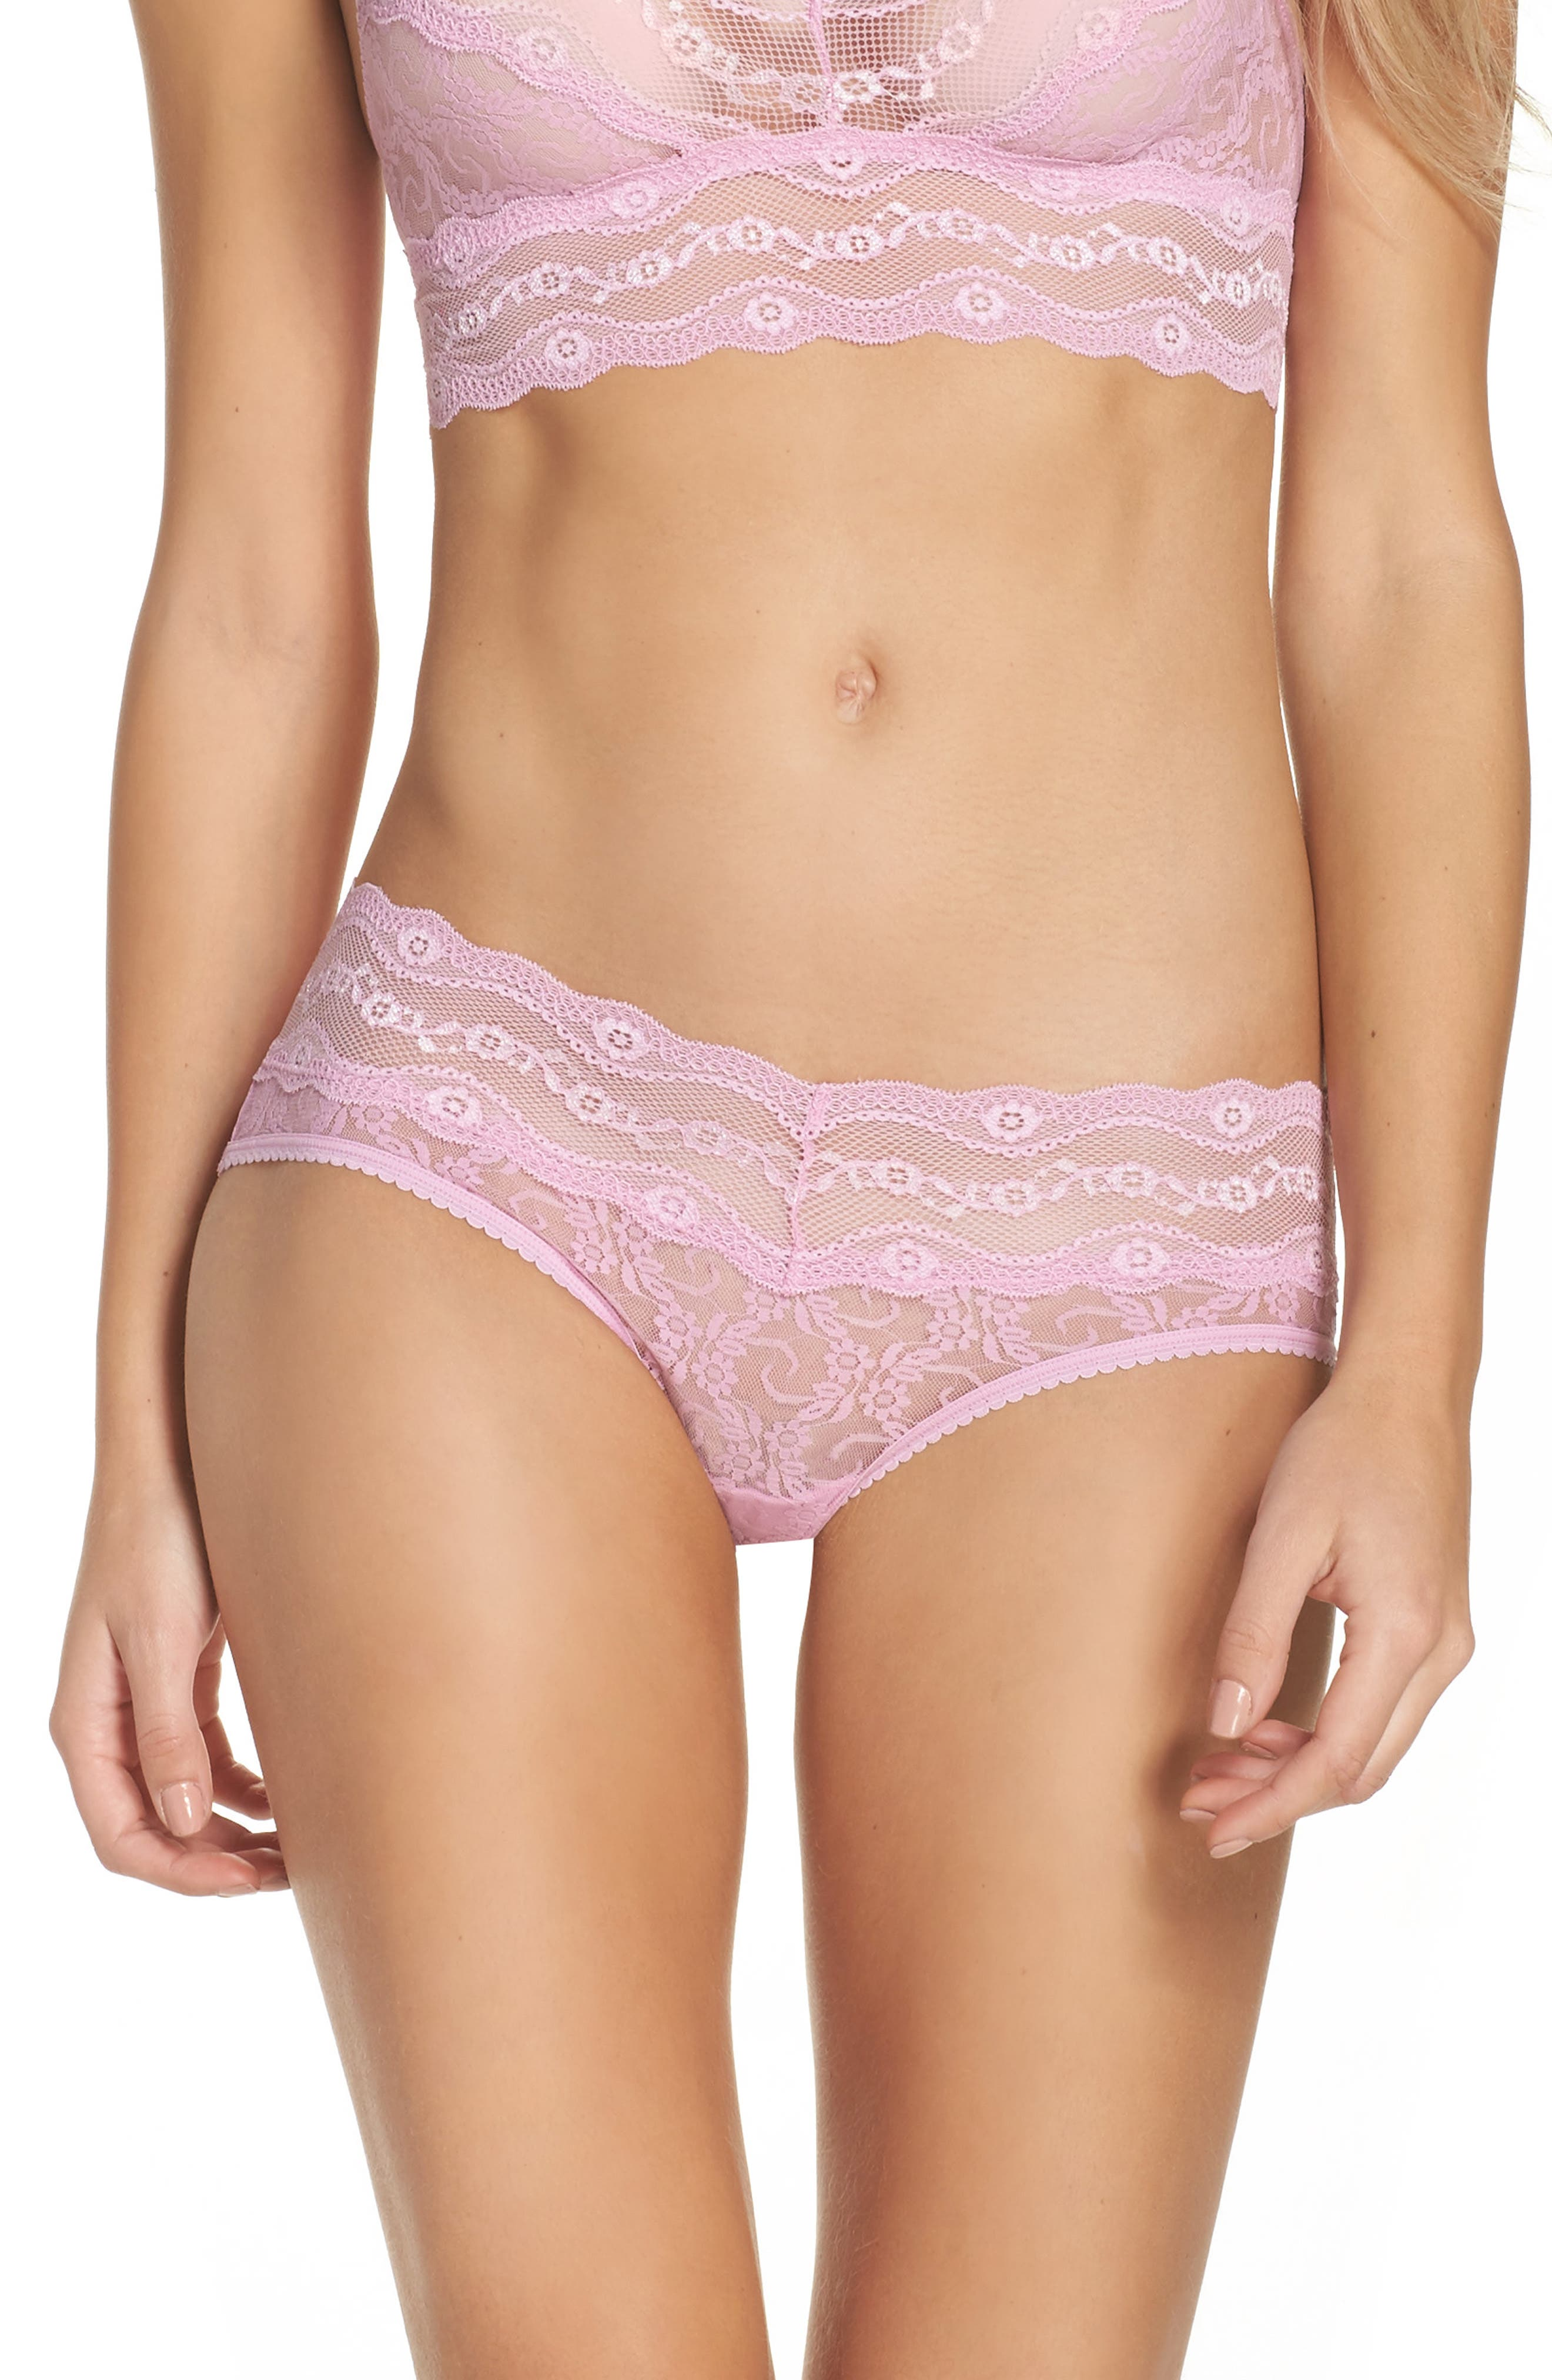 Alternate Image 1 Selected - b.tempt'd by Wacoal 'Lace Kiss' Hipster Briefs (3 for $33)